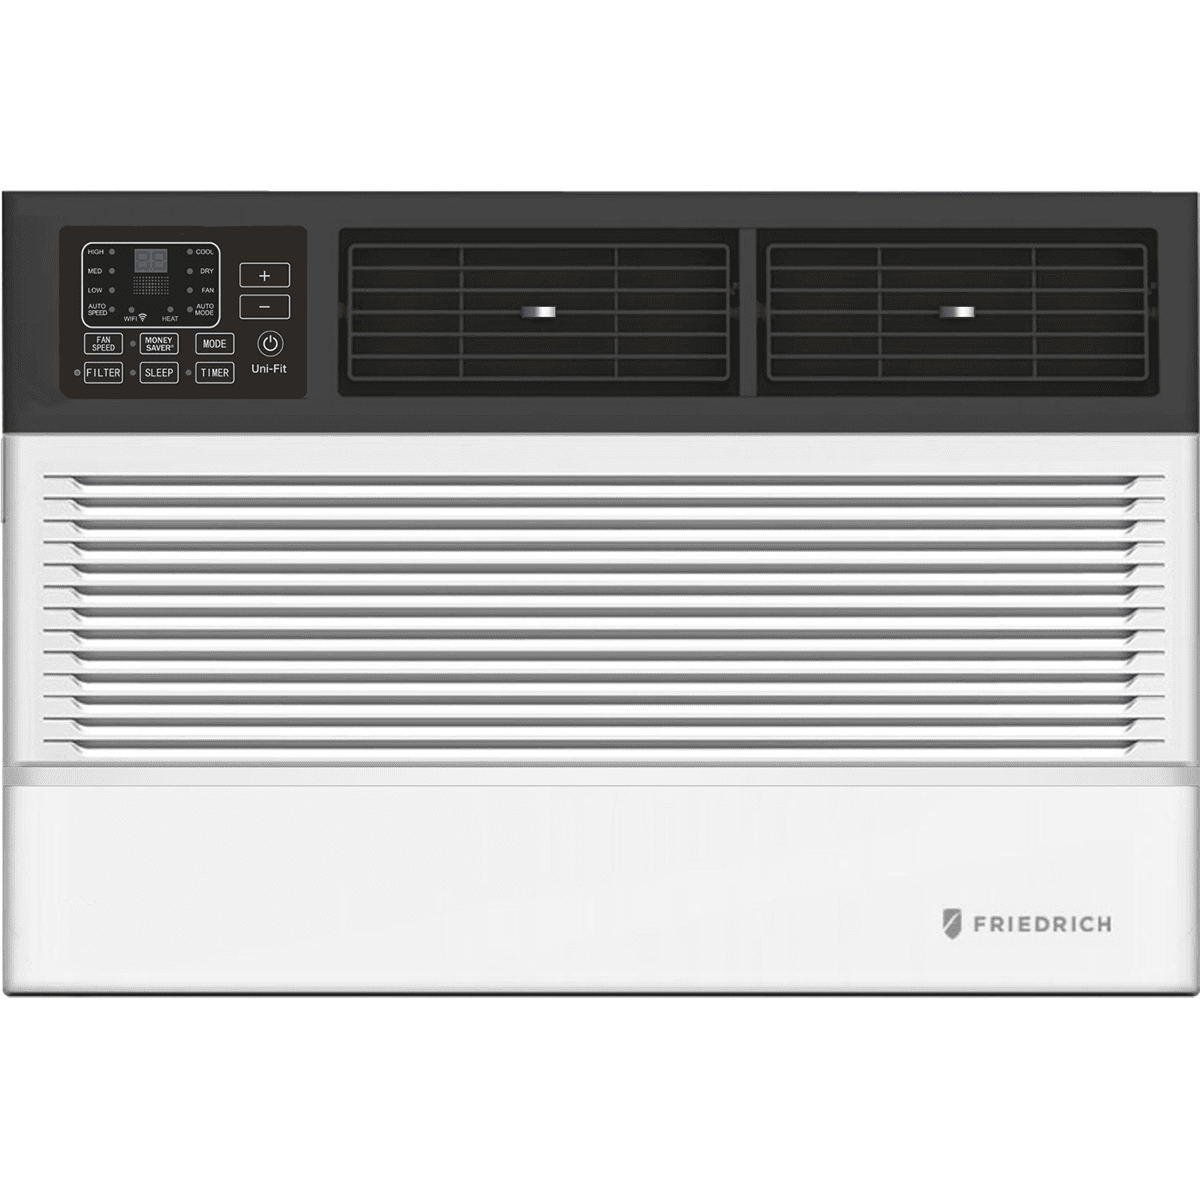 Friedrich Uni-Fit 10,000 BTU Thru-the-Wall AC UCT10A30A